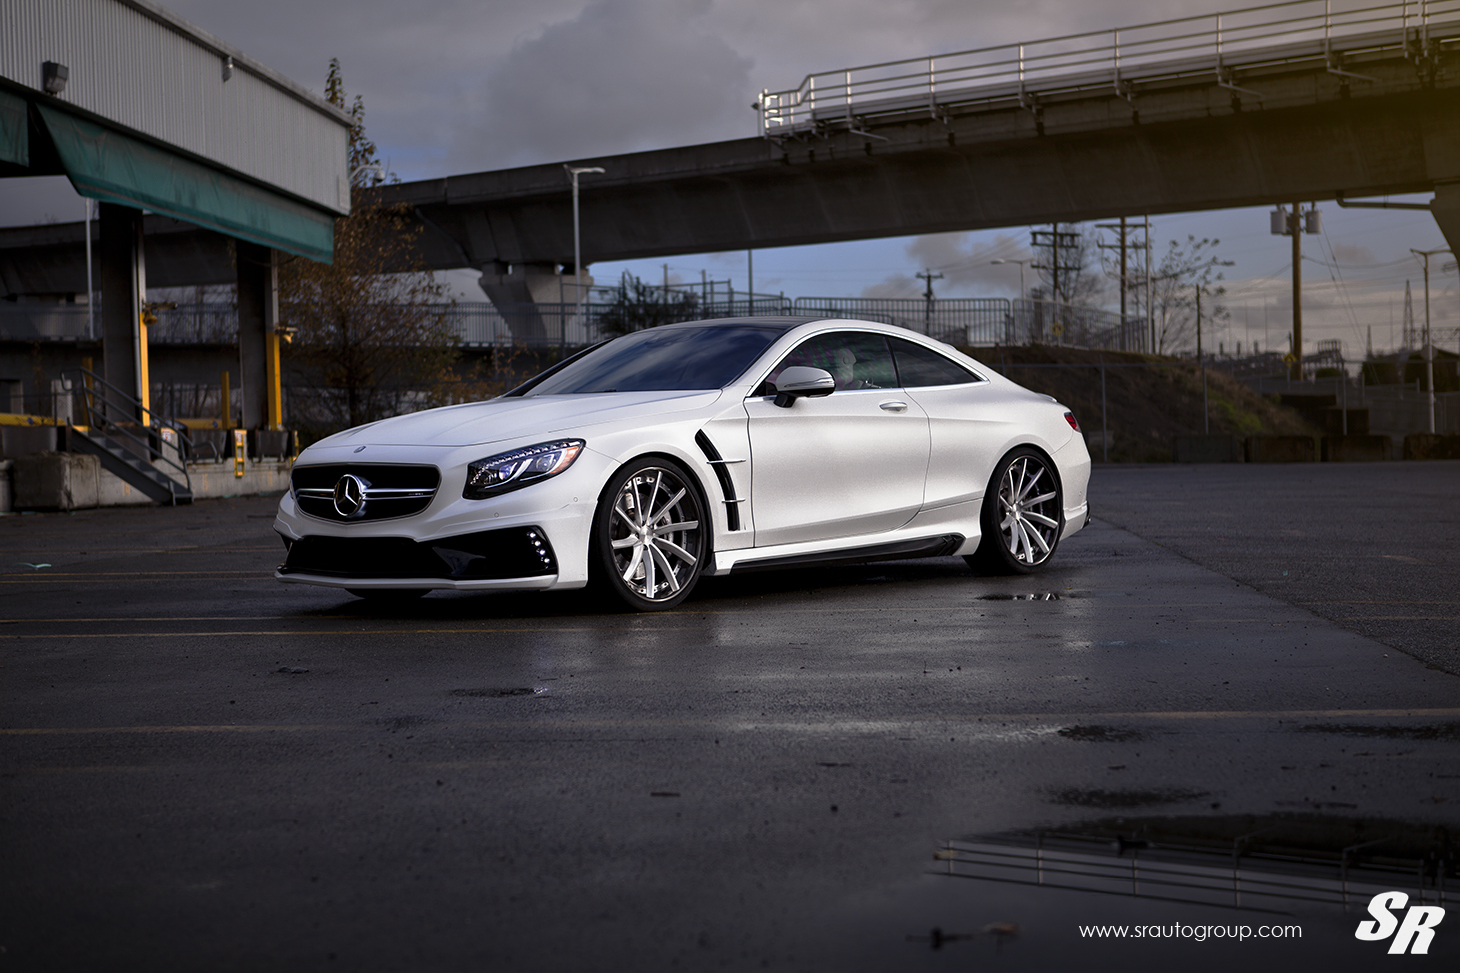 mercedes amg s63 coupe gets wald body kit and pur wheels. Black Bedroom Furniture Sets. Home Design Ideas